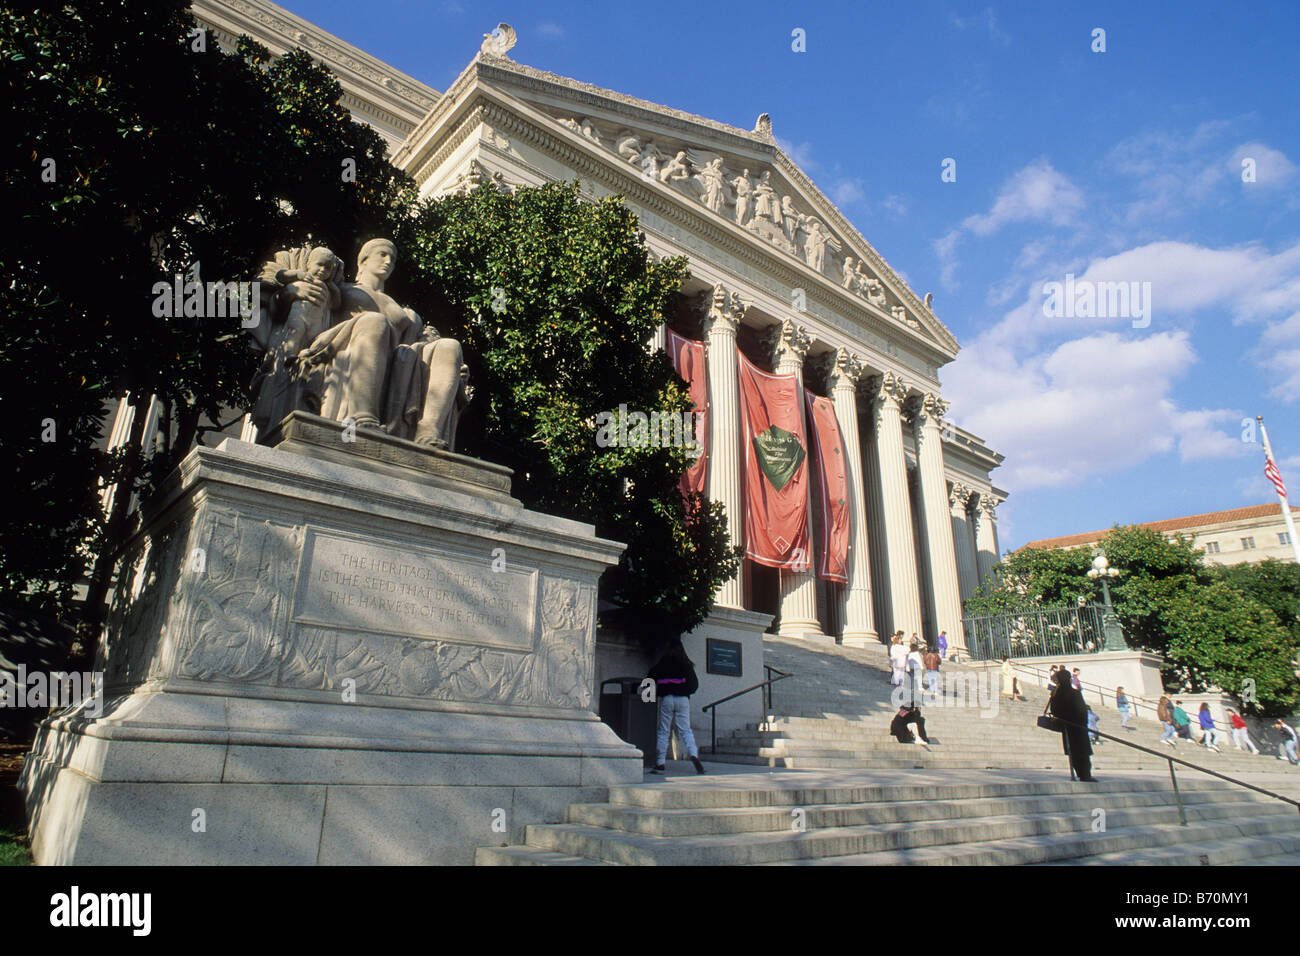 USA Washington DC The National Archives of the United States of America Building Exterior - Stock Image